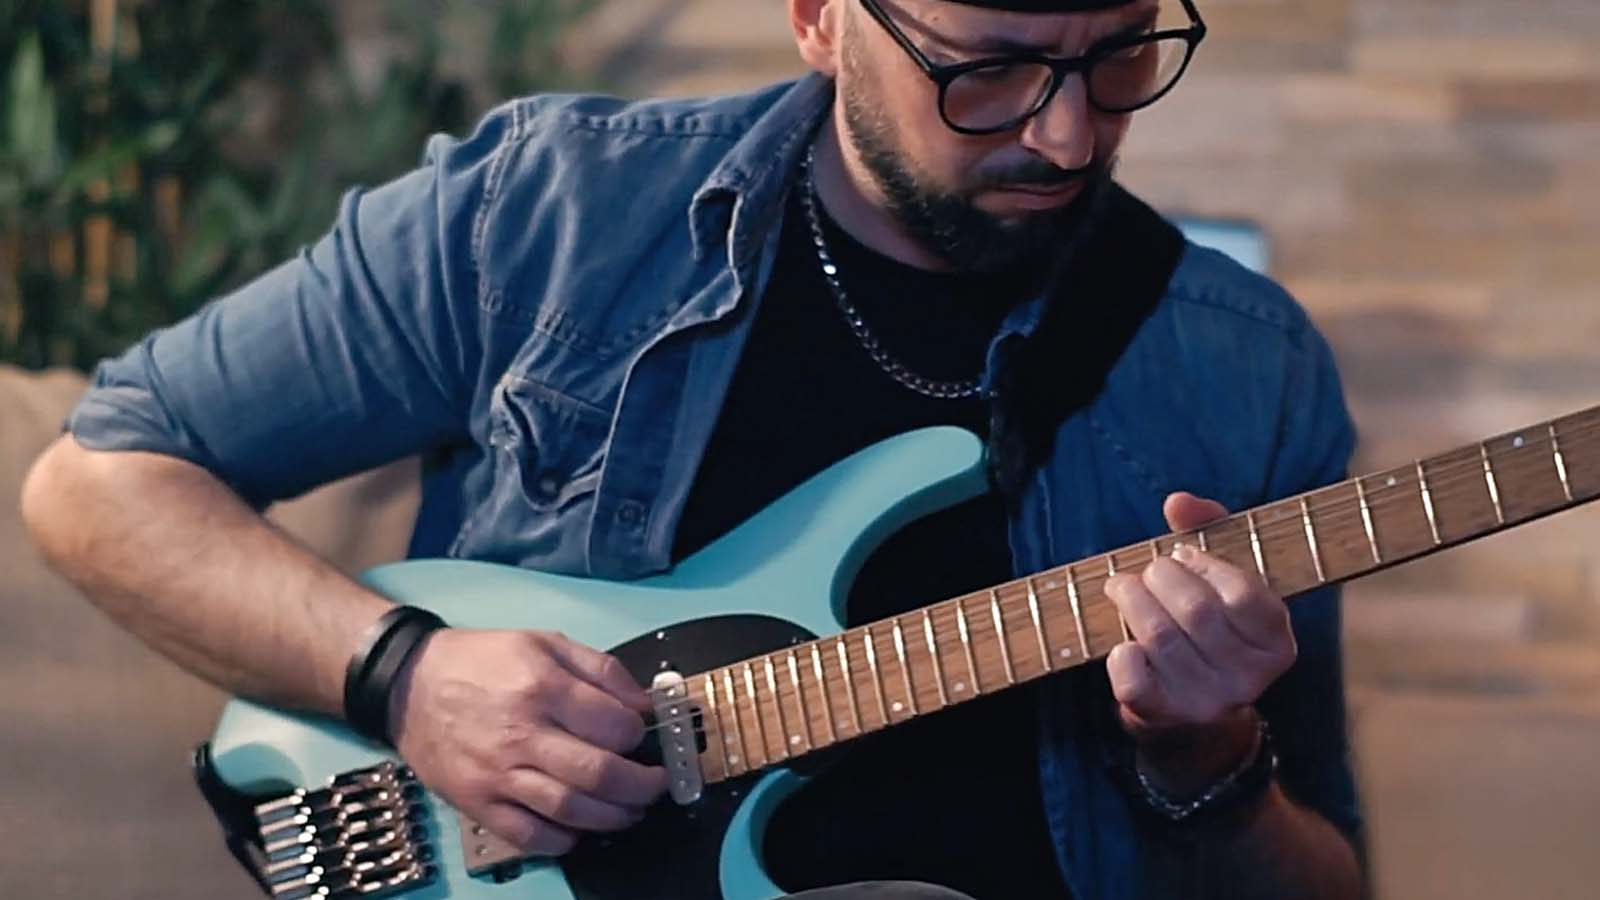 hight resolution of videos ibanez artcore vibrante hollow body guitar